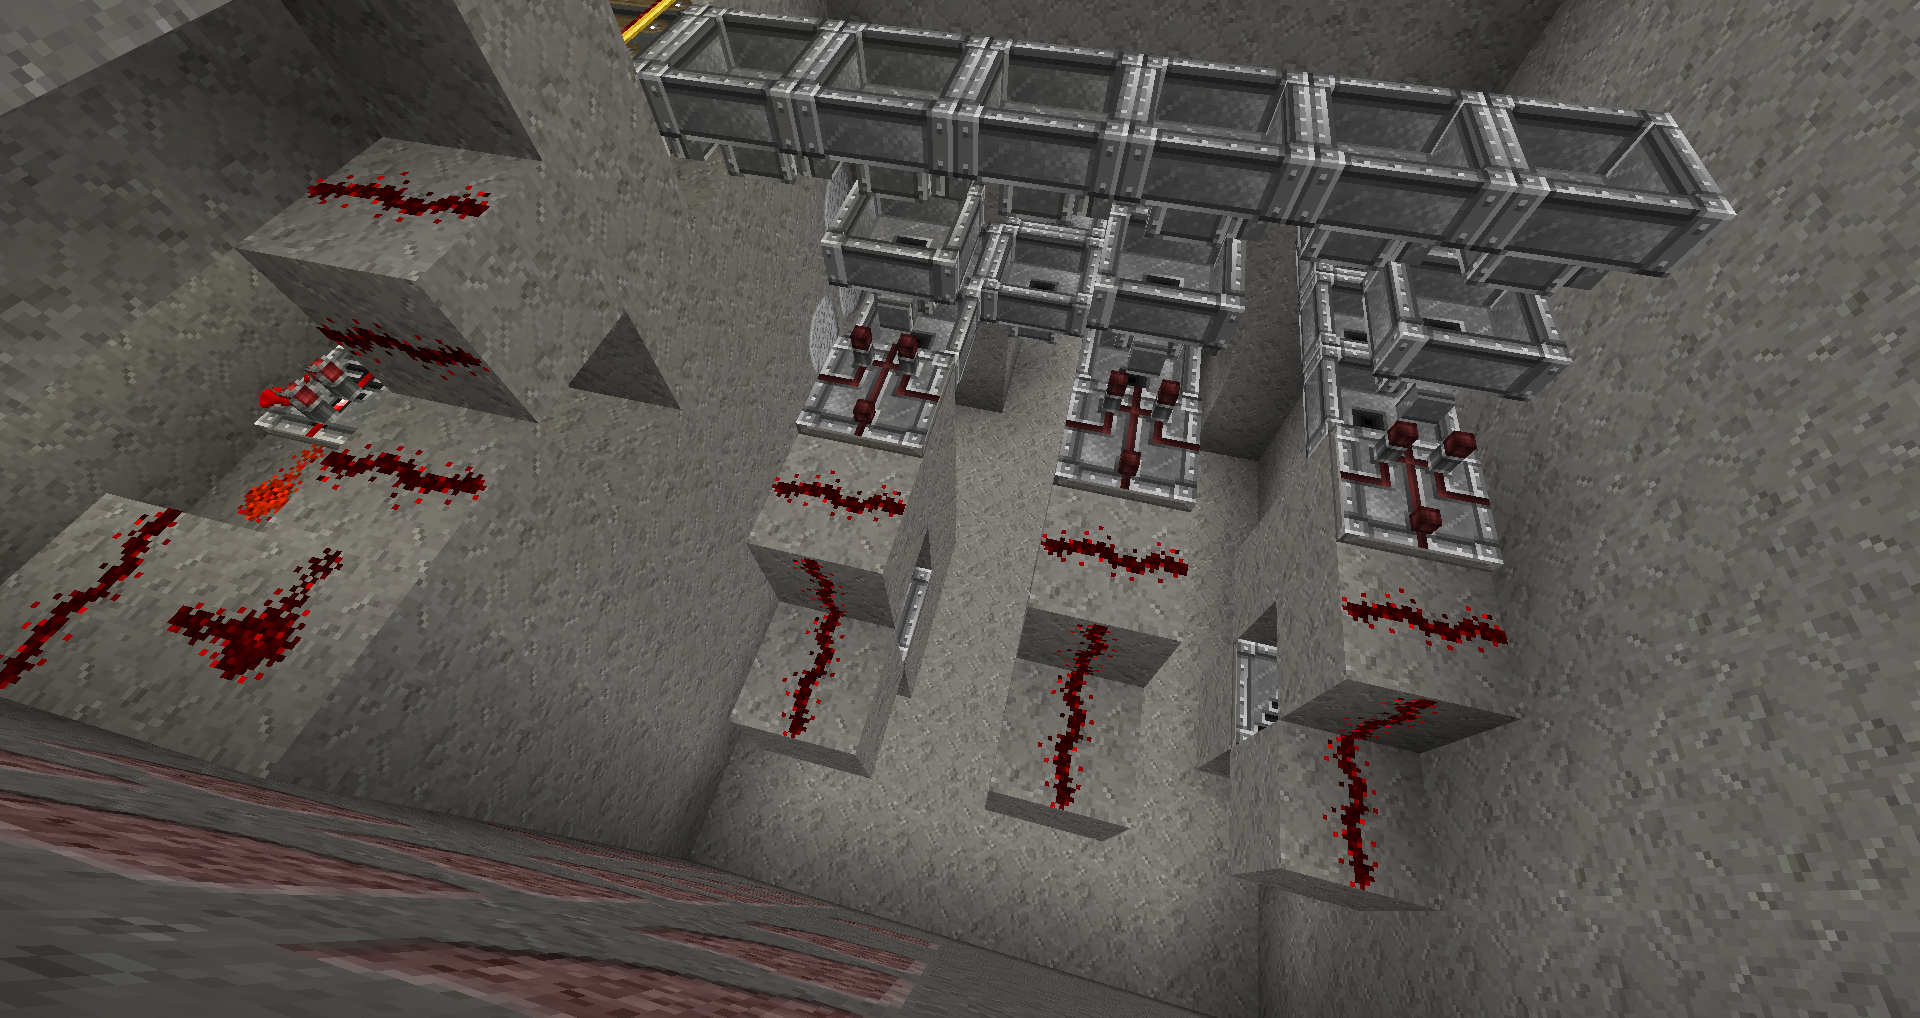 Mc 53384 When Using Resource Packs Redstone Dust Line Is Rotated Wiring Mod 2014 07 05 202907